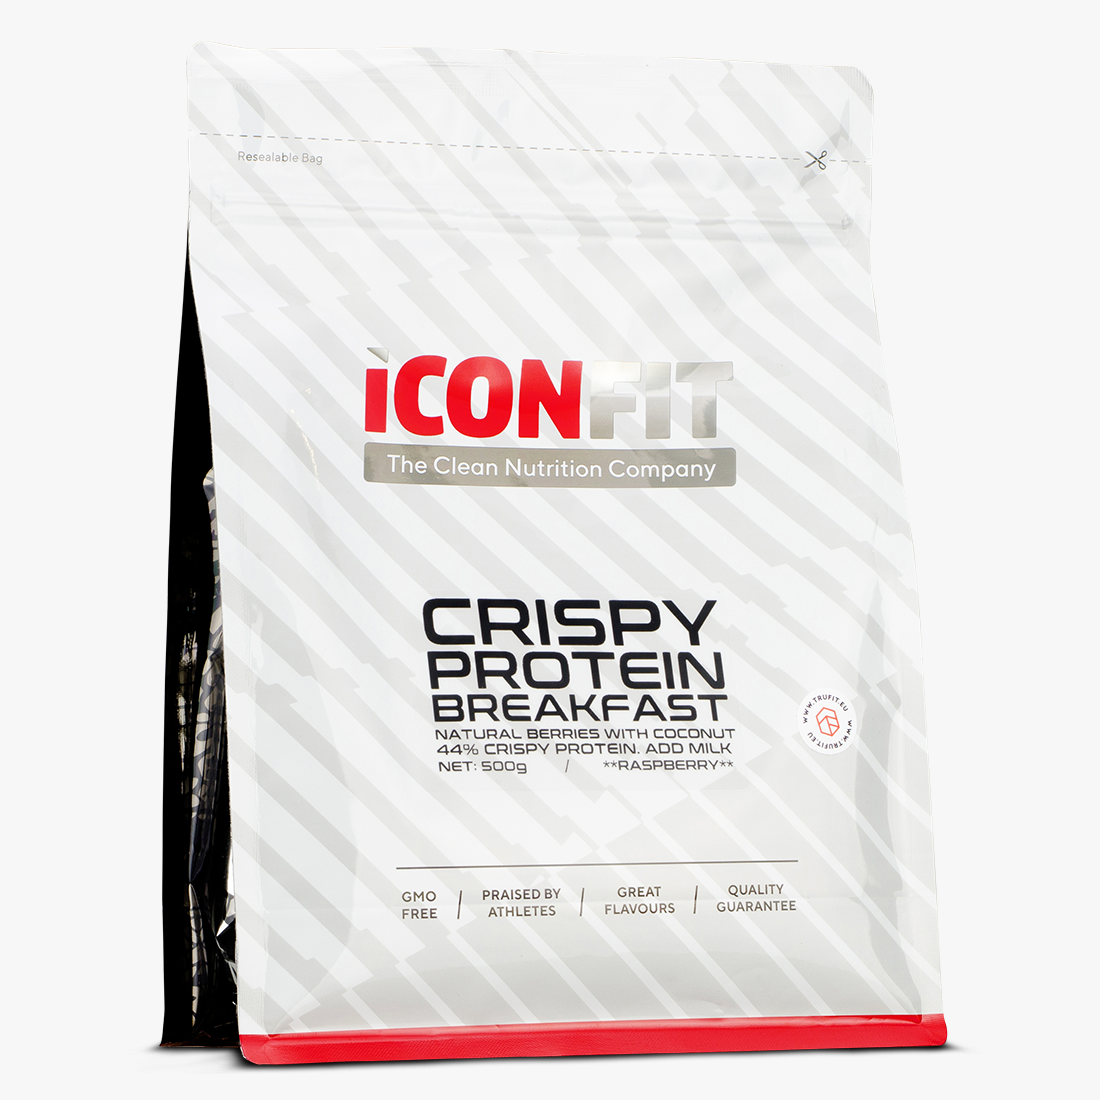 iConfit - Crispy Protein Breakfast